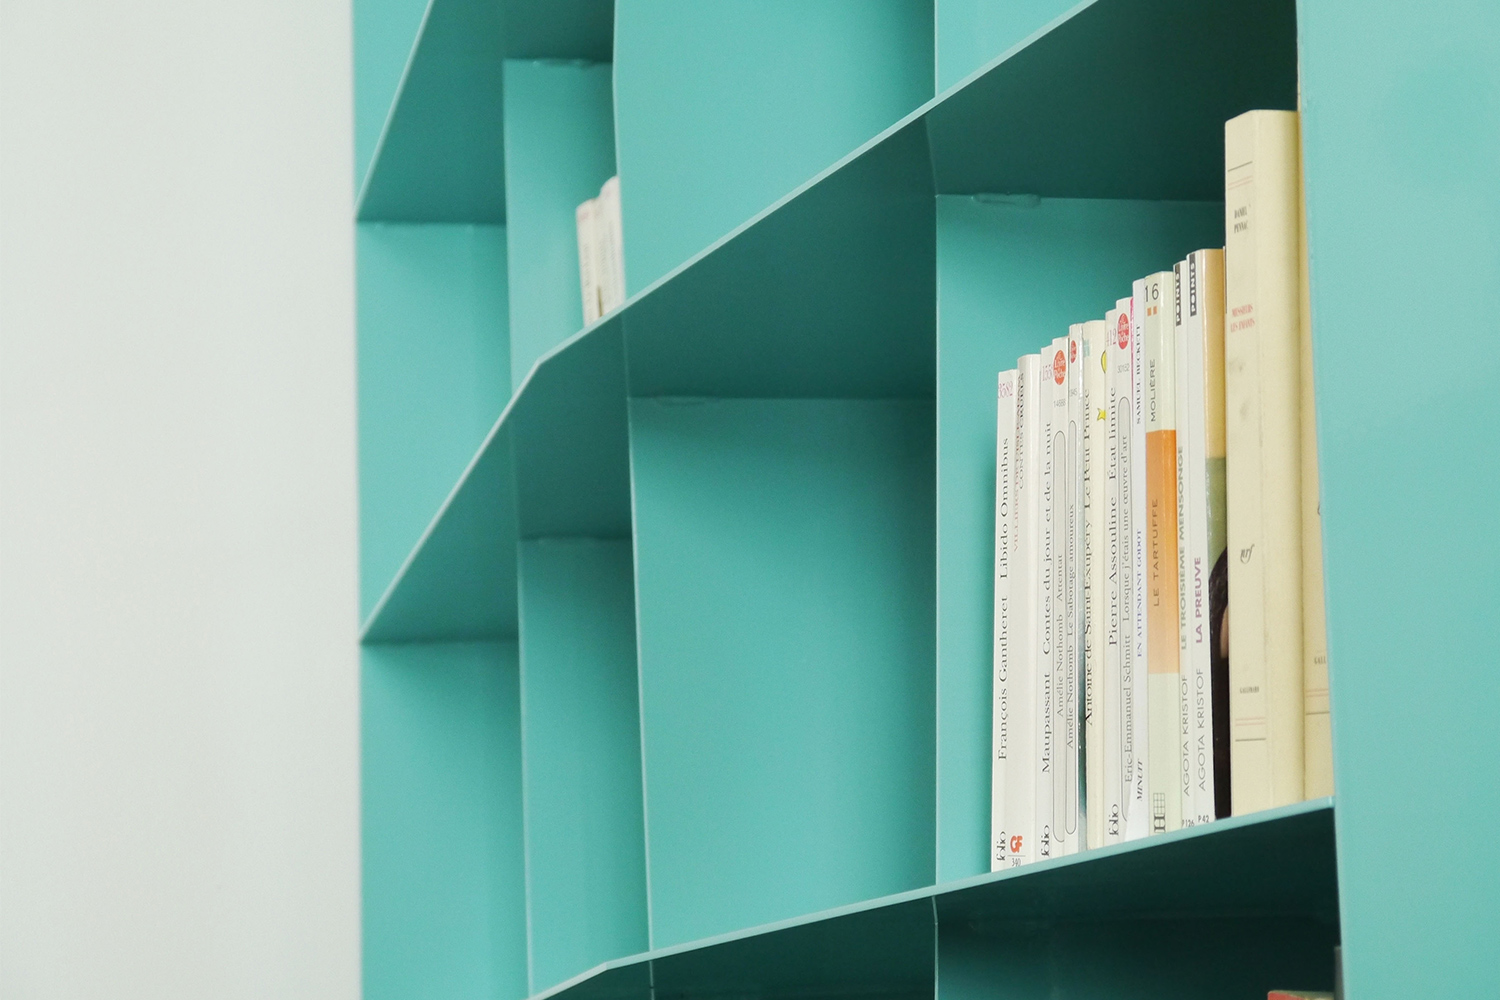 Library made to measure for a modern condo. Steel plate structure finished turquoise baked paint.